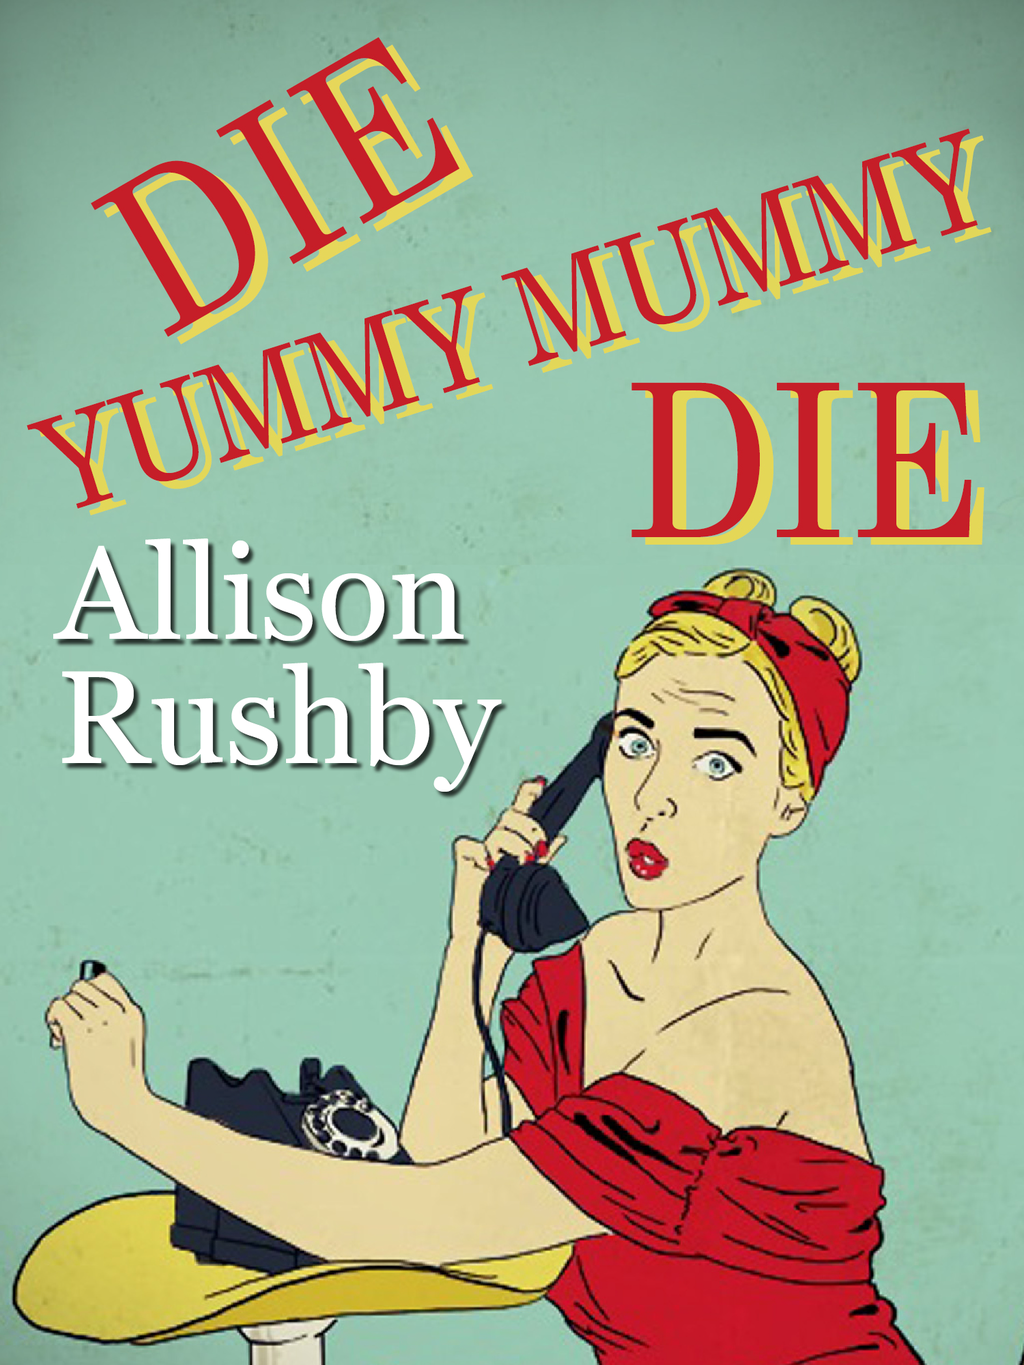 Die Yummy Mummy Die By: Allison Rushby